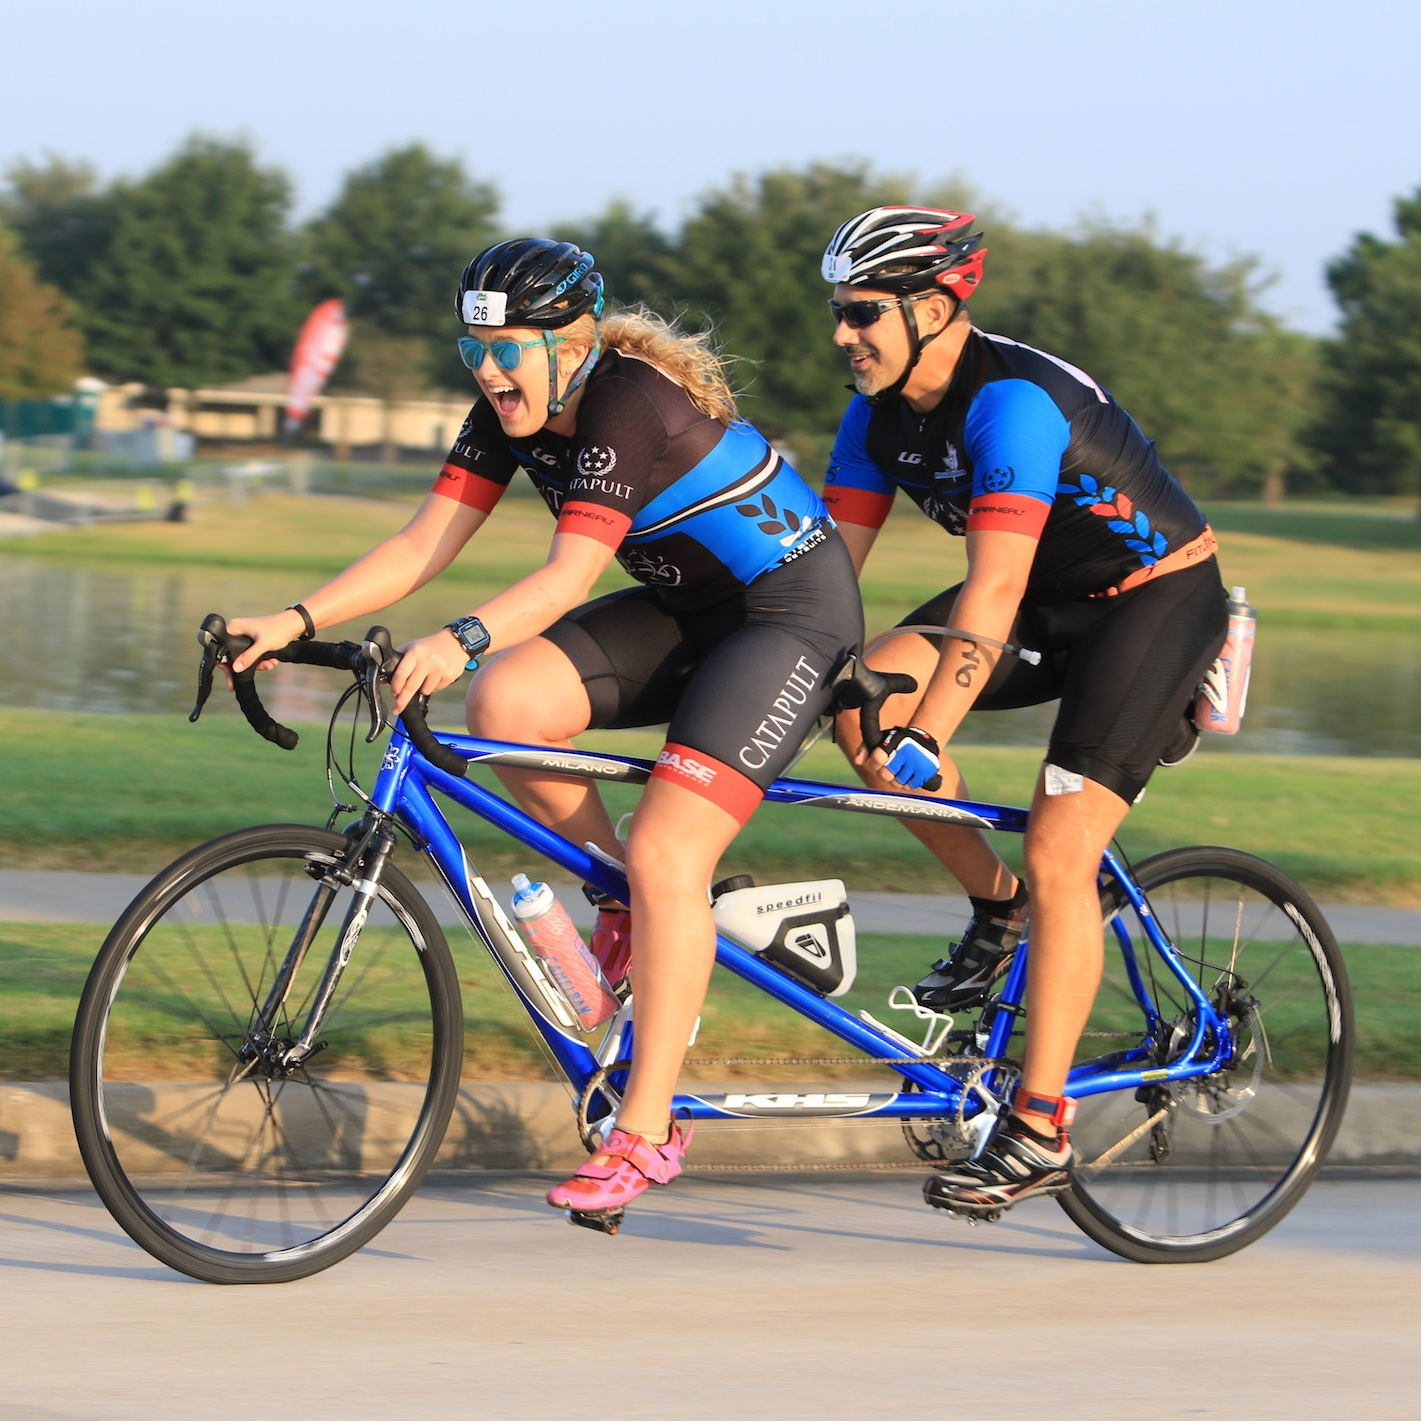 Cheyenne Meyer (Guide) - I began working with Team Catapult as a sighted guide for a visually impaired athlete in January 2017. Since then, I've guided a handful of Catapult athletes at various events, ranging from the Cypress Sprint Triathlon to the Aramco Half Marathon to the Ironman Texas 70.3. I have also guided at the USA Paratriathlon National Championships, piloted at the Olympic Training Center's Paracycling and Paratriathlon camps, and was part of the National Champion tandem duo at the 2019 USA Paracycling Road National Championships, in the time trial! My favorite part of being involved with Team Catapult is the camaraderie and great memories made at each team practice and event!